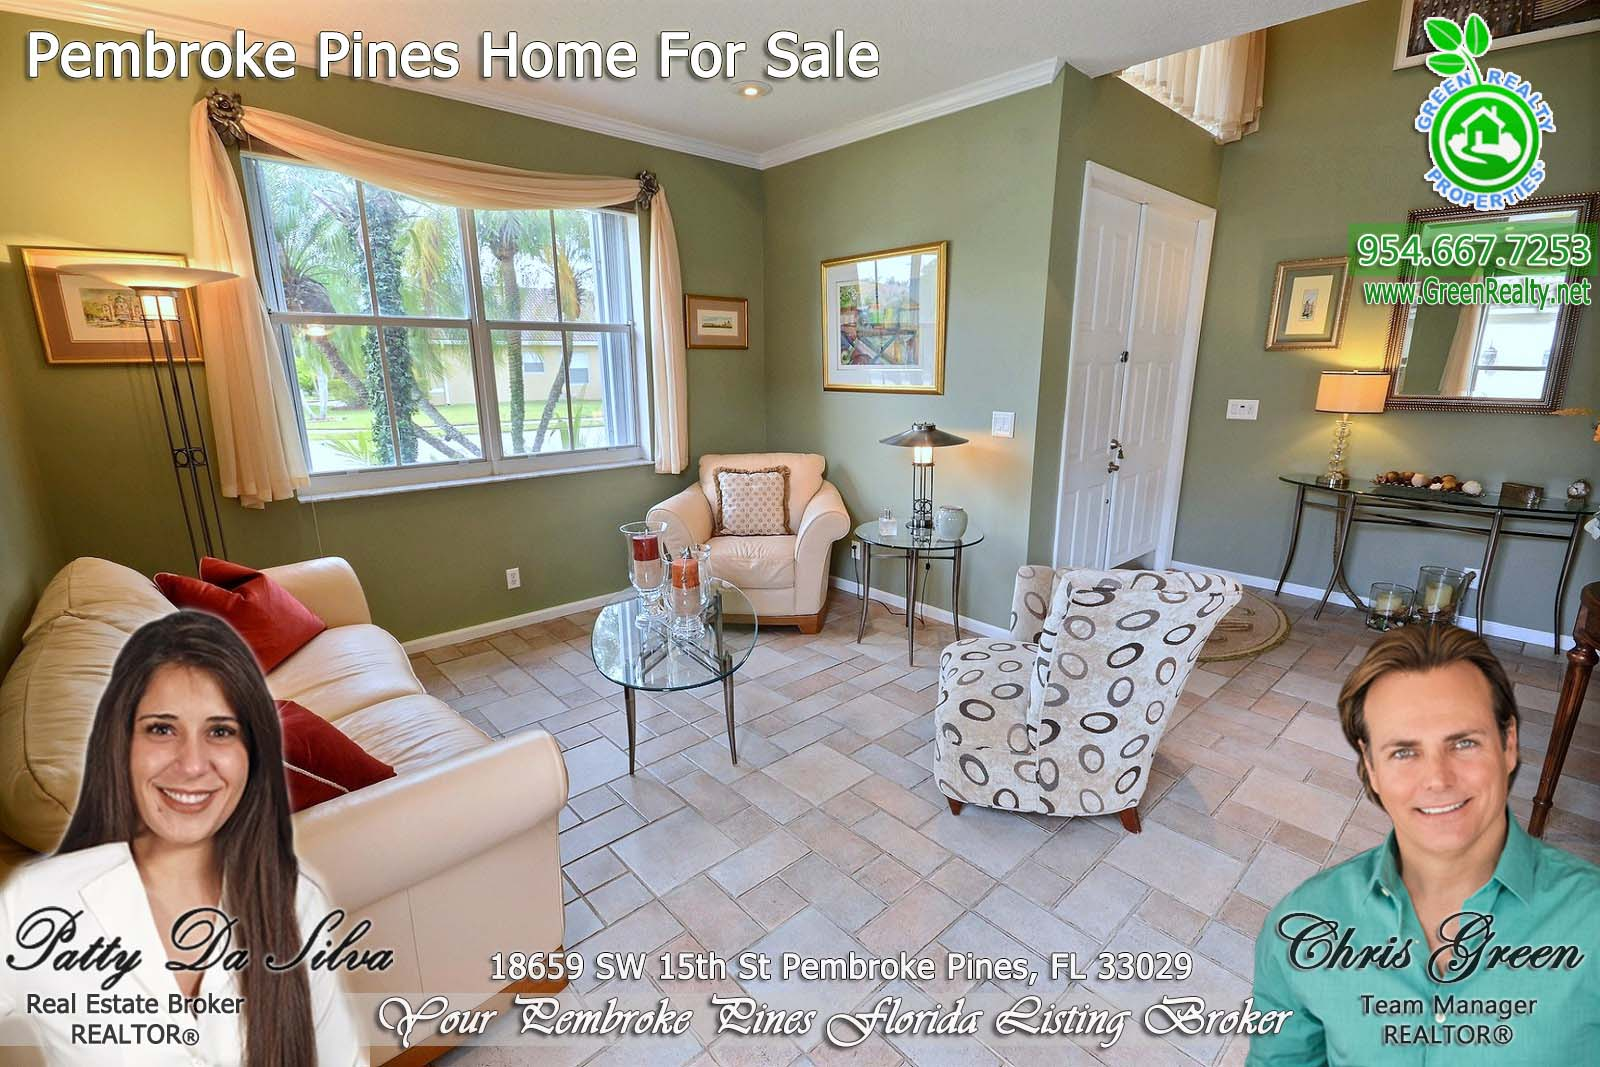 10 Pembroke Pines Florida Real Estate (1)